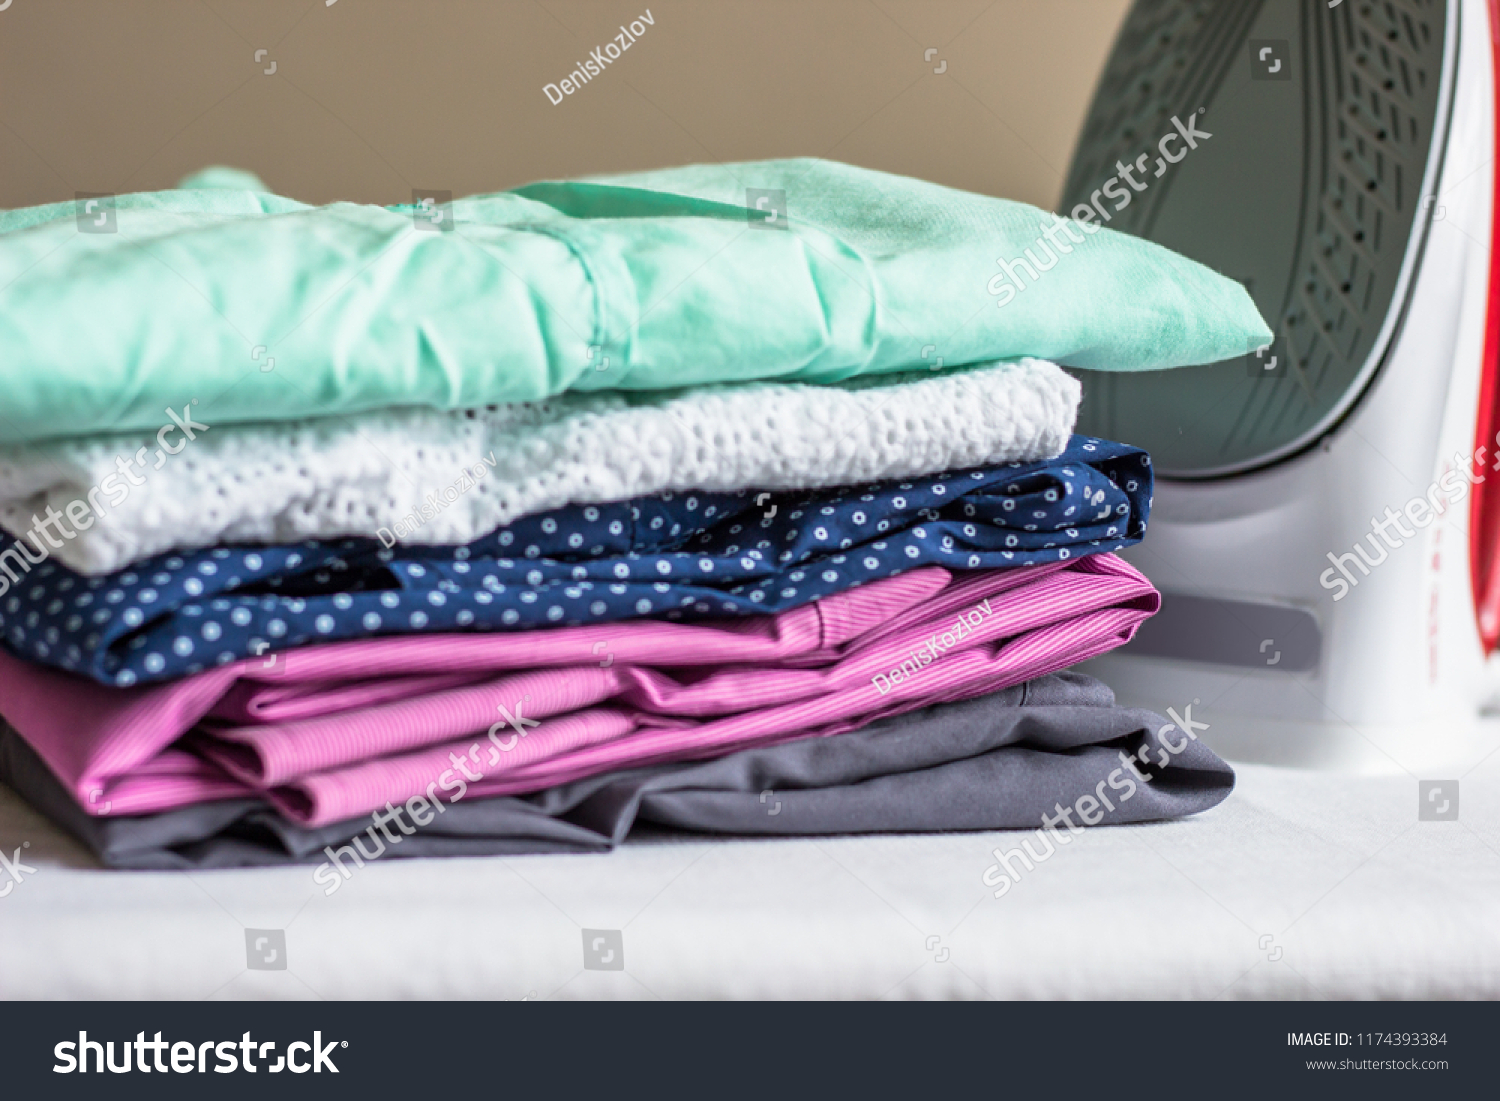 Iron on the ironing board and non-ironed clothes #1174393384